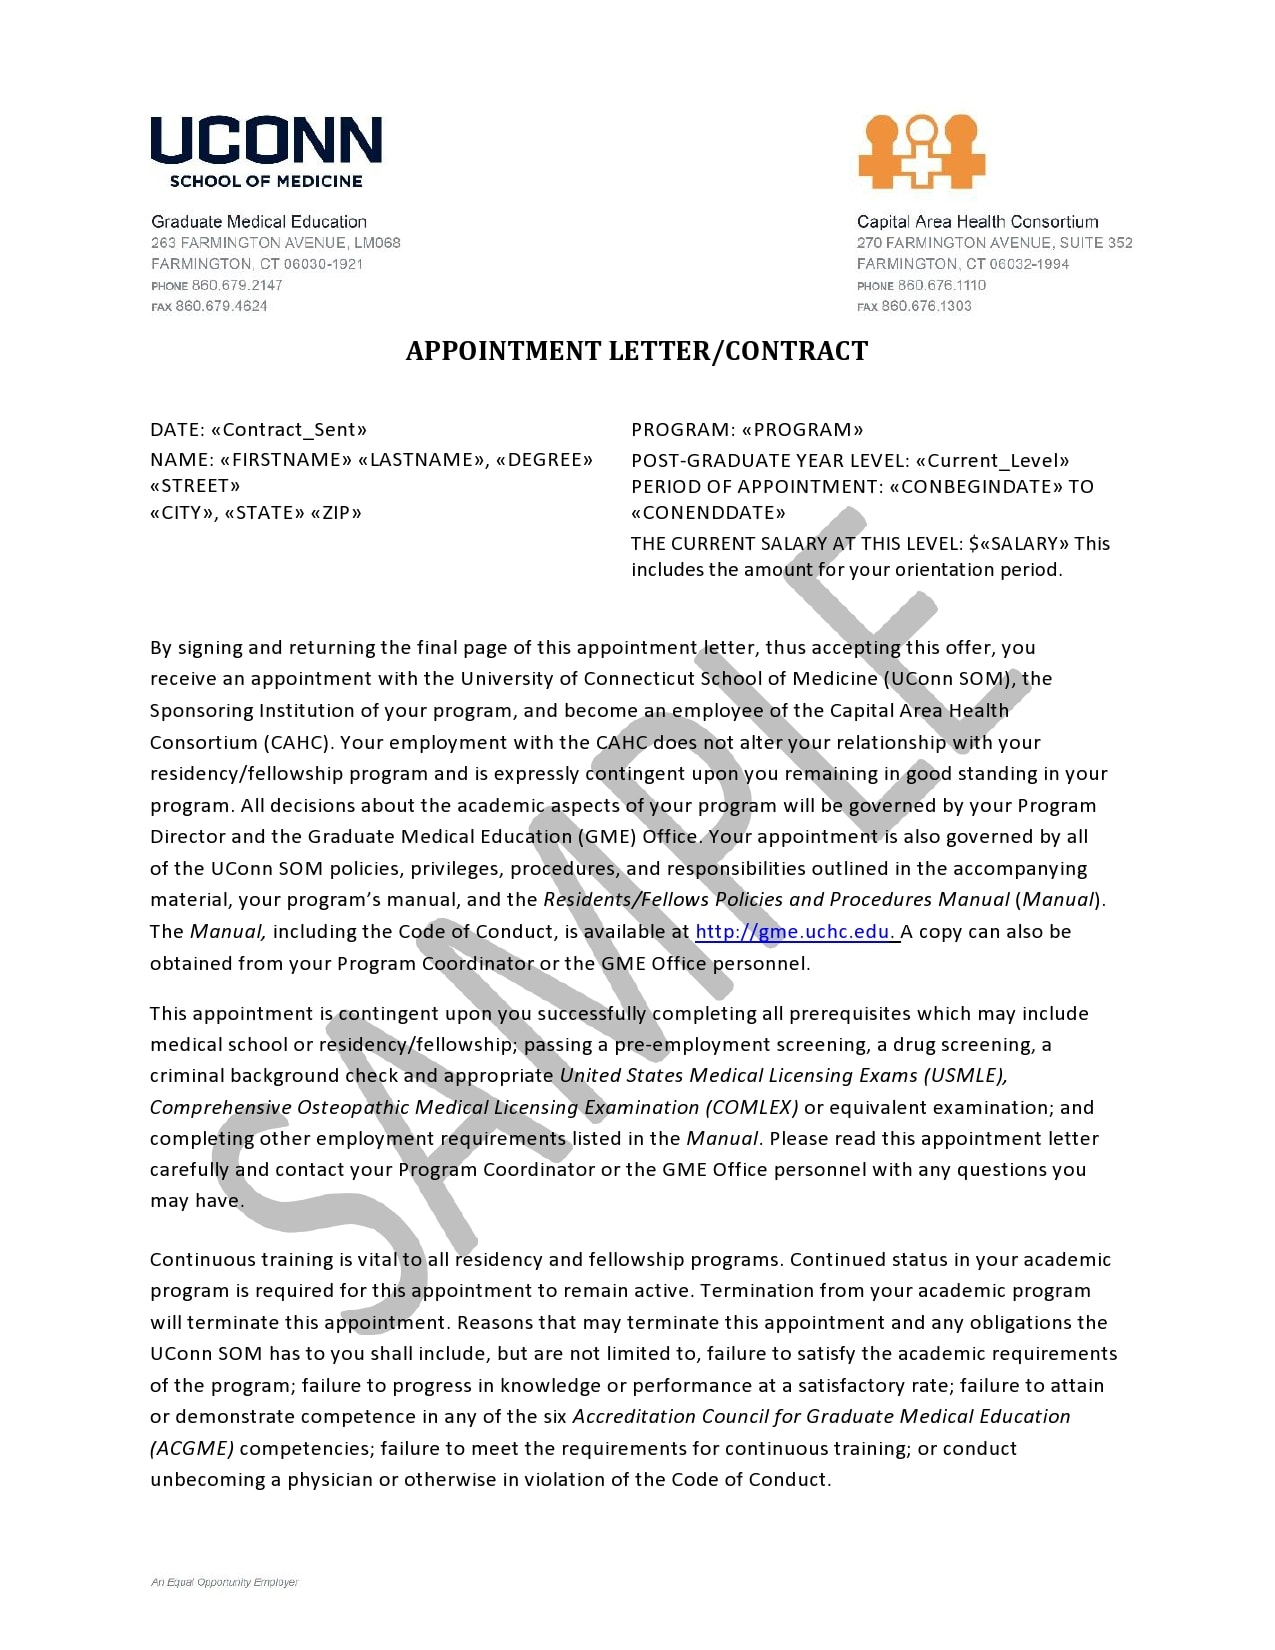 appointment letter 27